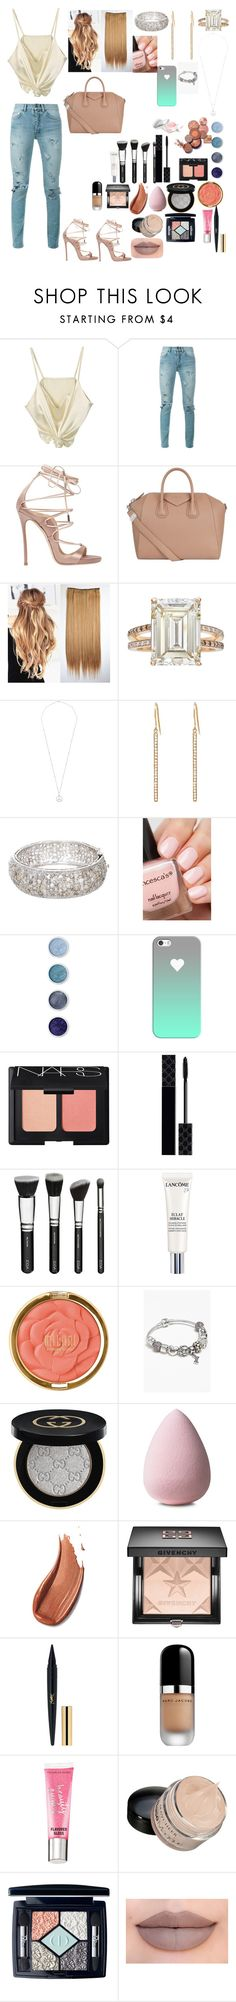 """""""Weekend♥♦♥"""" by fashion-dora15 ❤ liked on Polyvore featuring Yves Saint Laurent, Dsquared2, Givenchy, Betteridge, Rosa de la Cruz, Jennifer Meyer Jewelry, Terre Mère, Casetify, NARS Cosmetics and Gucci"""